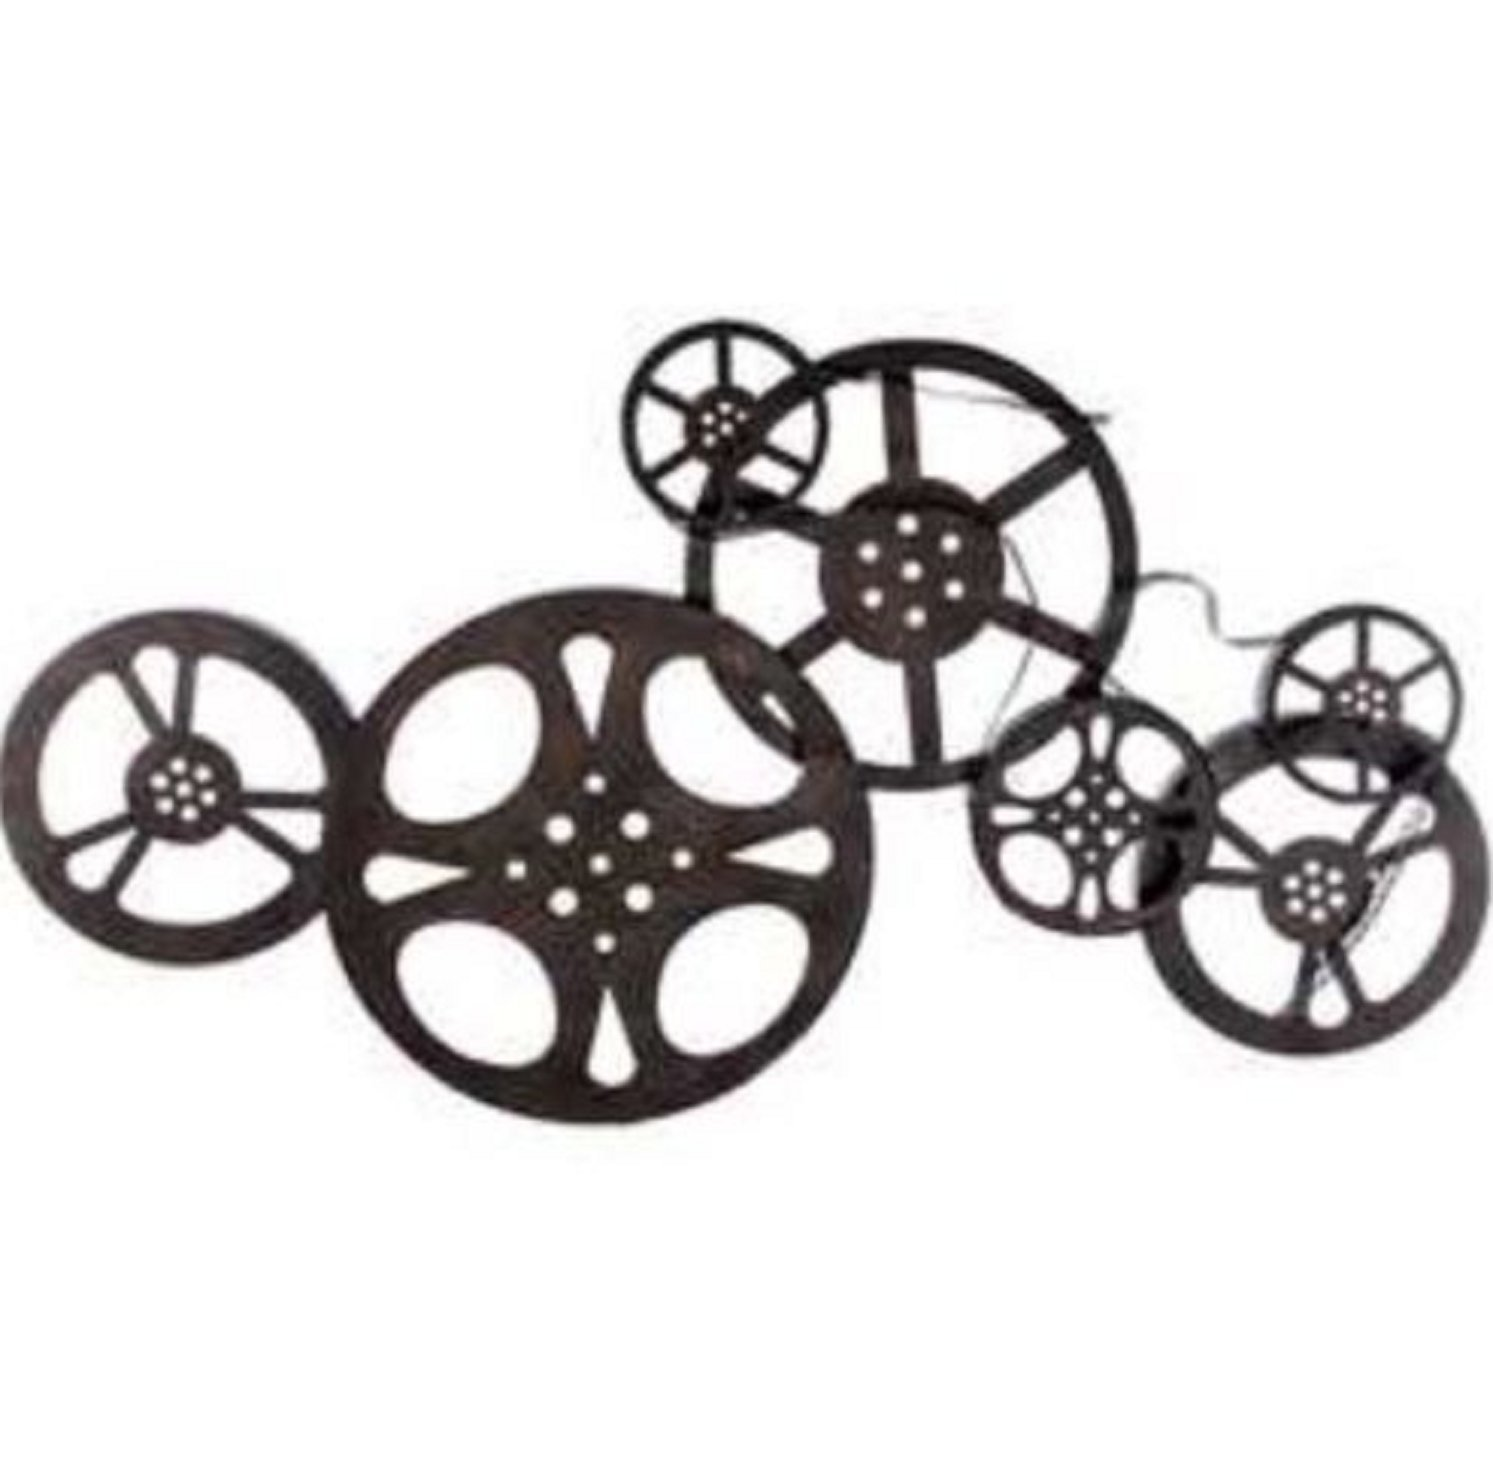 TNS STORE Antique Bronze Metal Movie Reel Wall Art Theater Home Decor Sale by TNS STORE